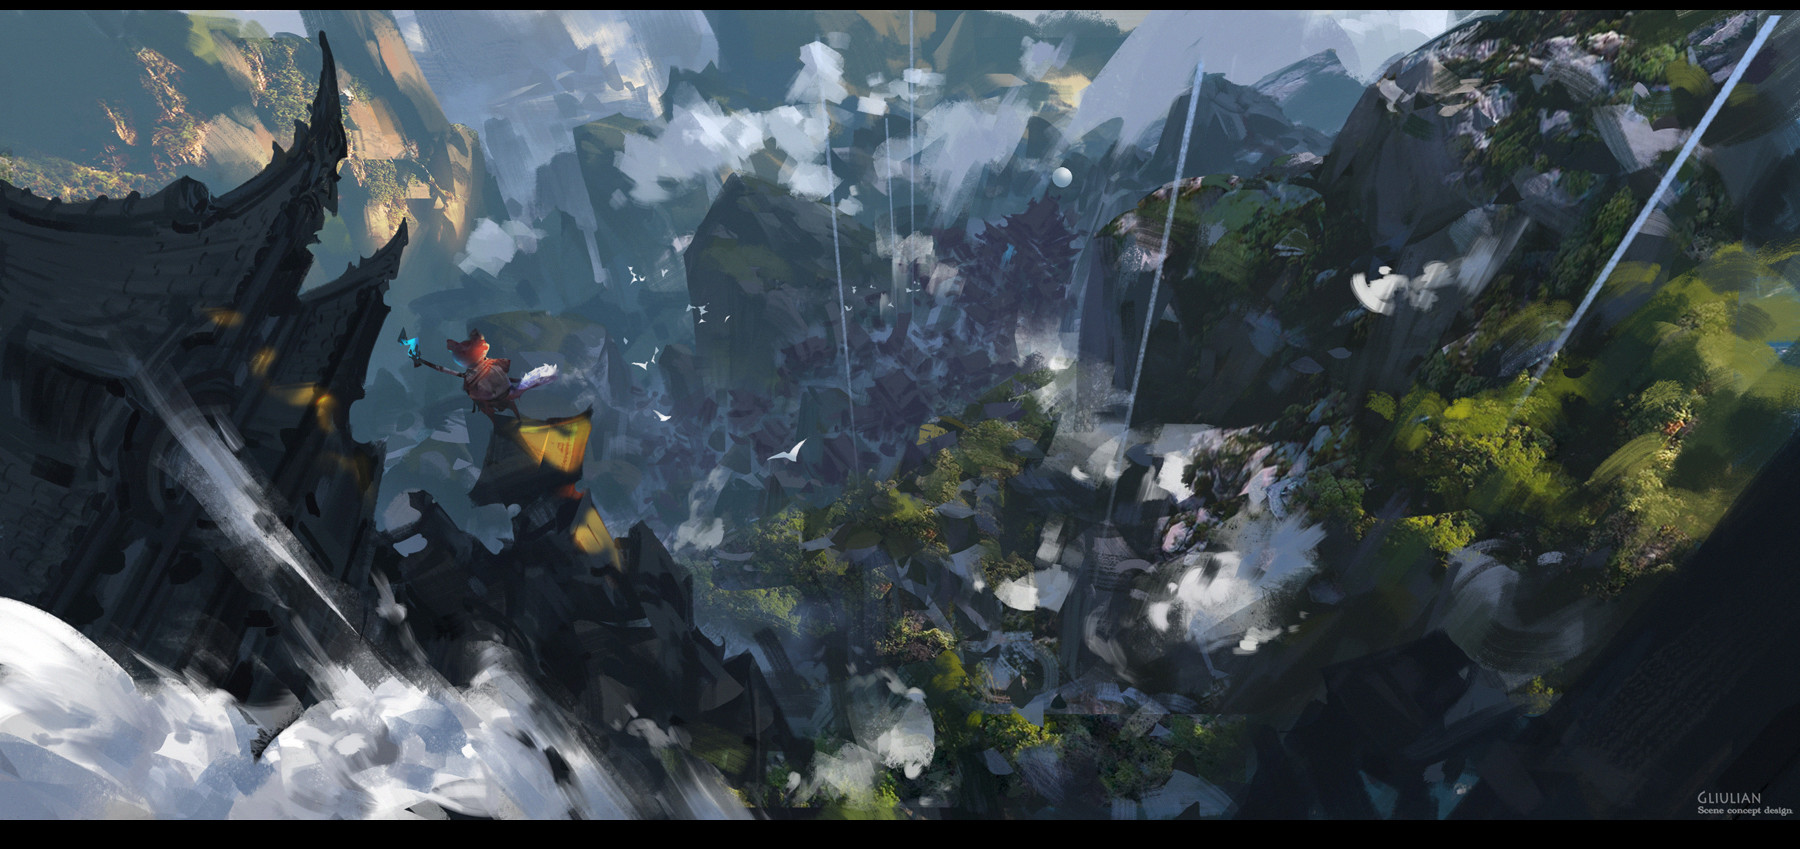 G Liulian digital painting concept art view fox forest mountain